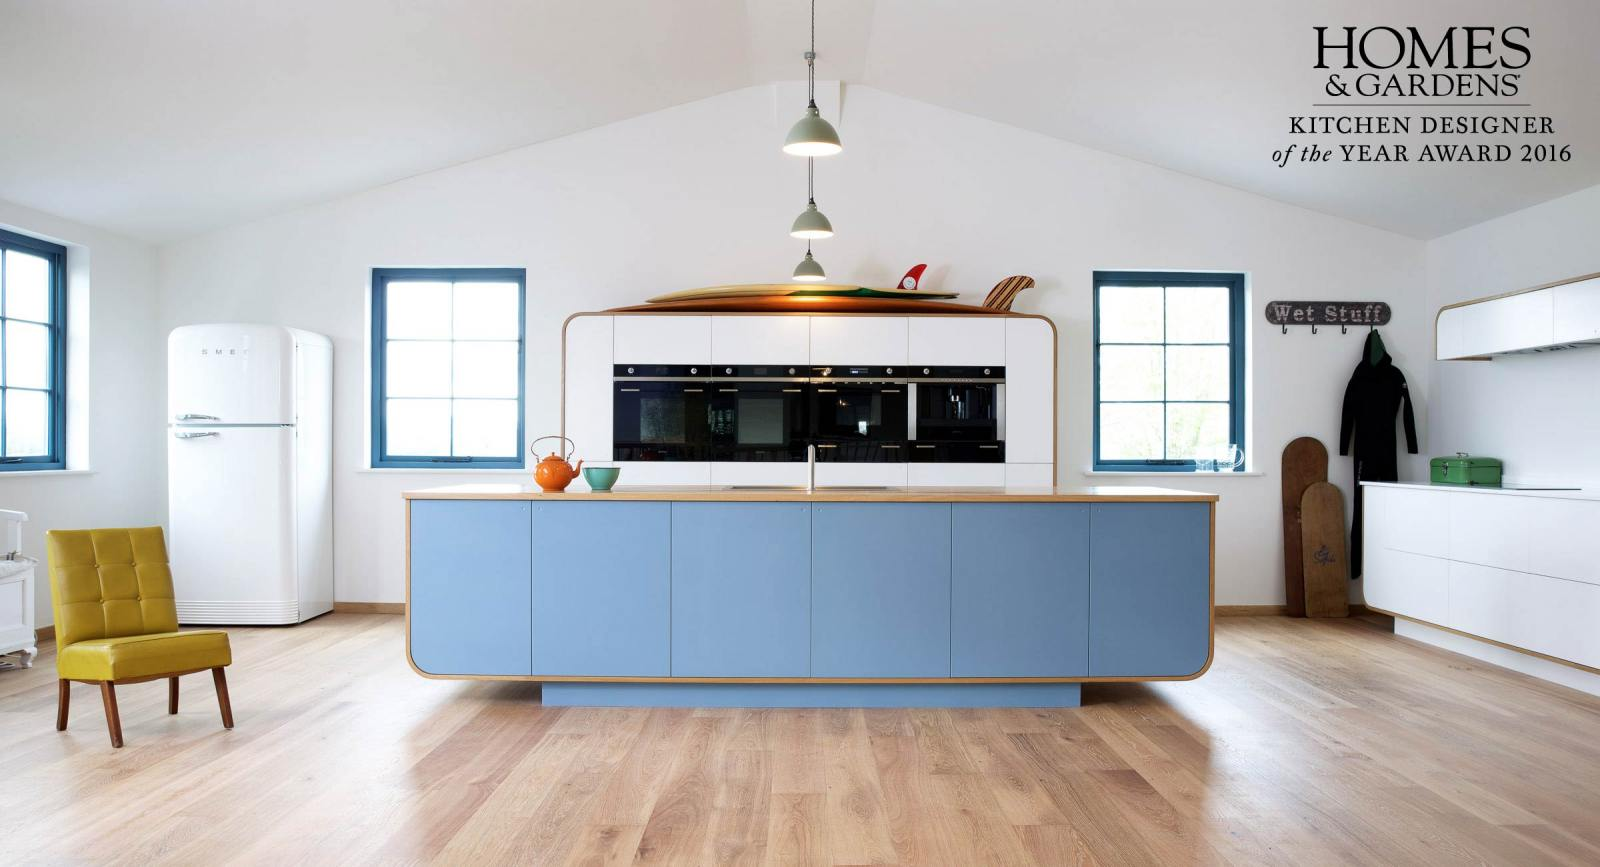 Air Kitchens by deVOL - Contemporary Designer Kitchens inspired by ...